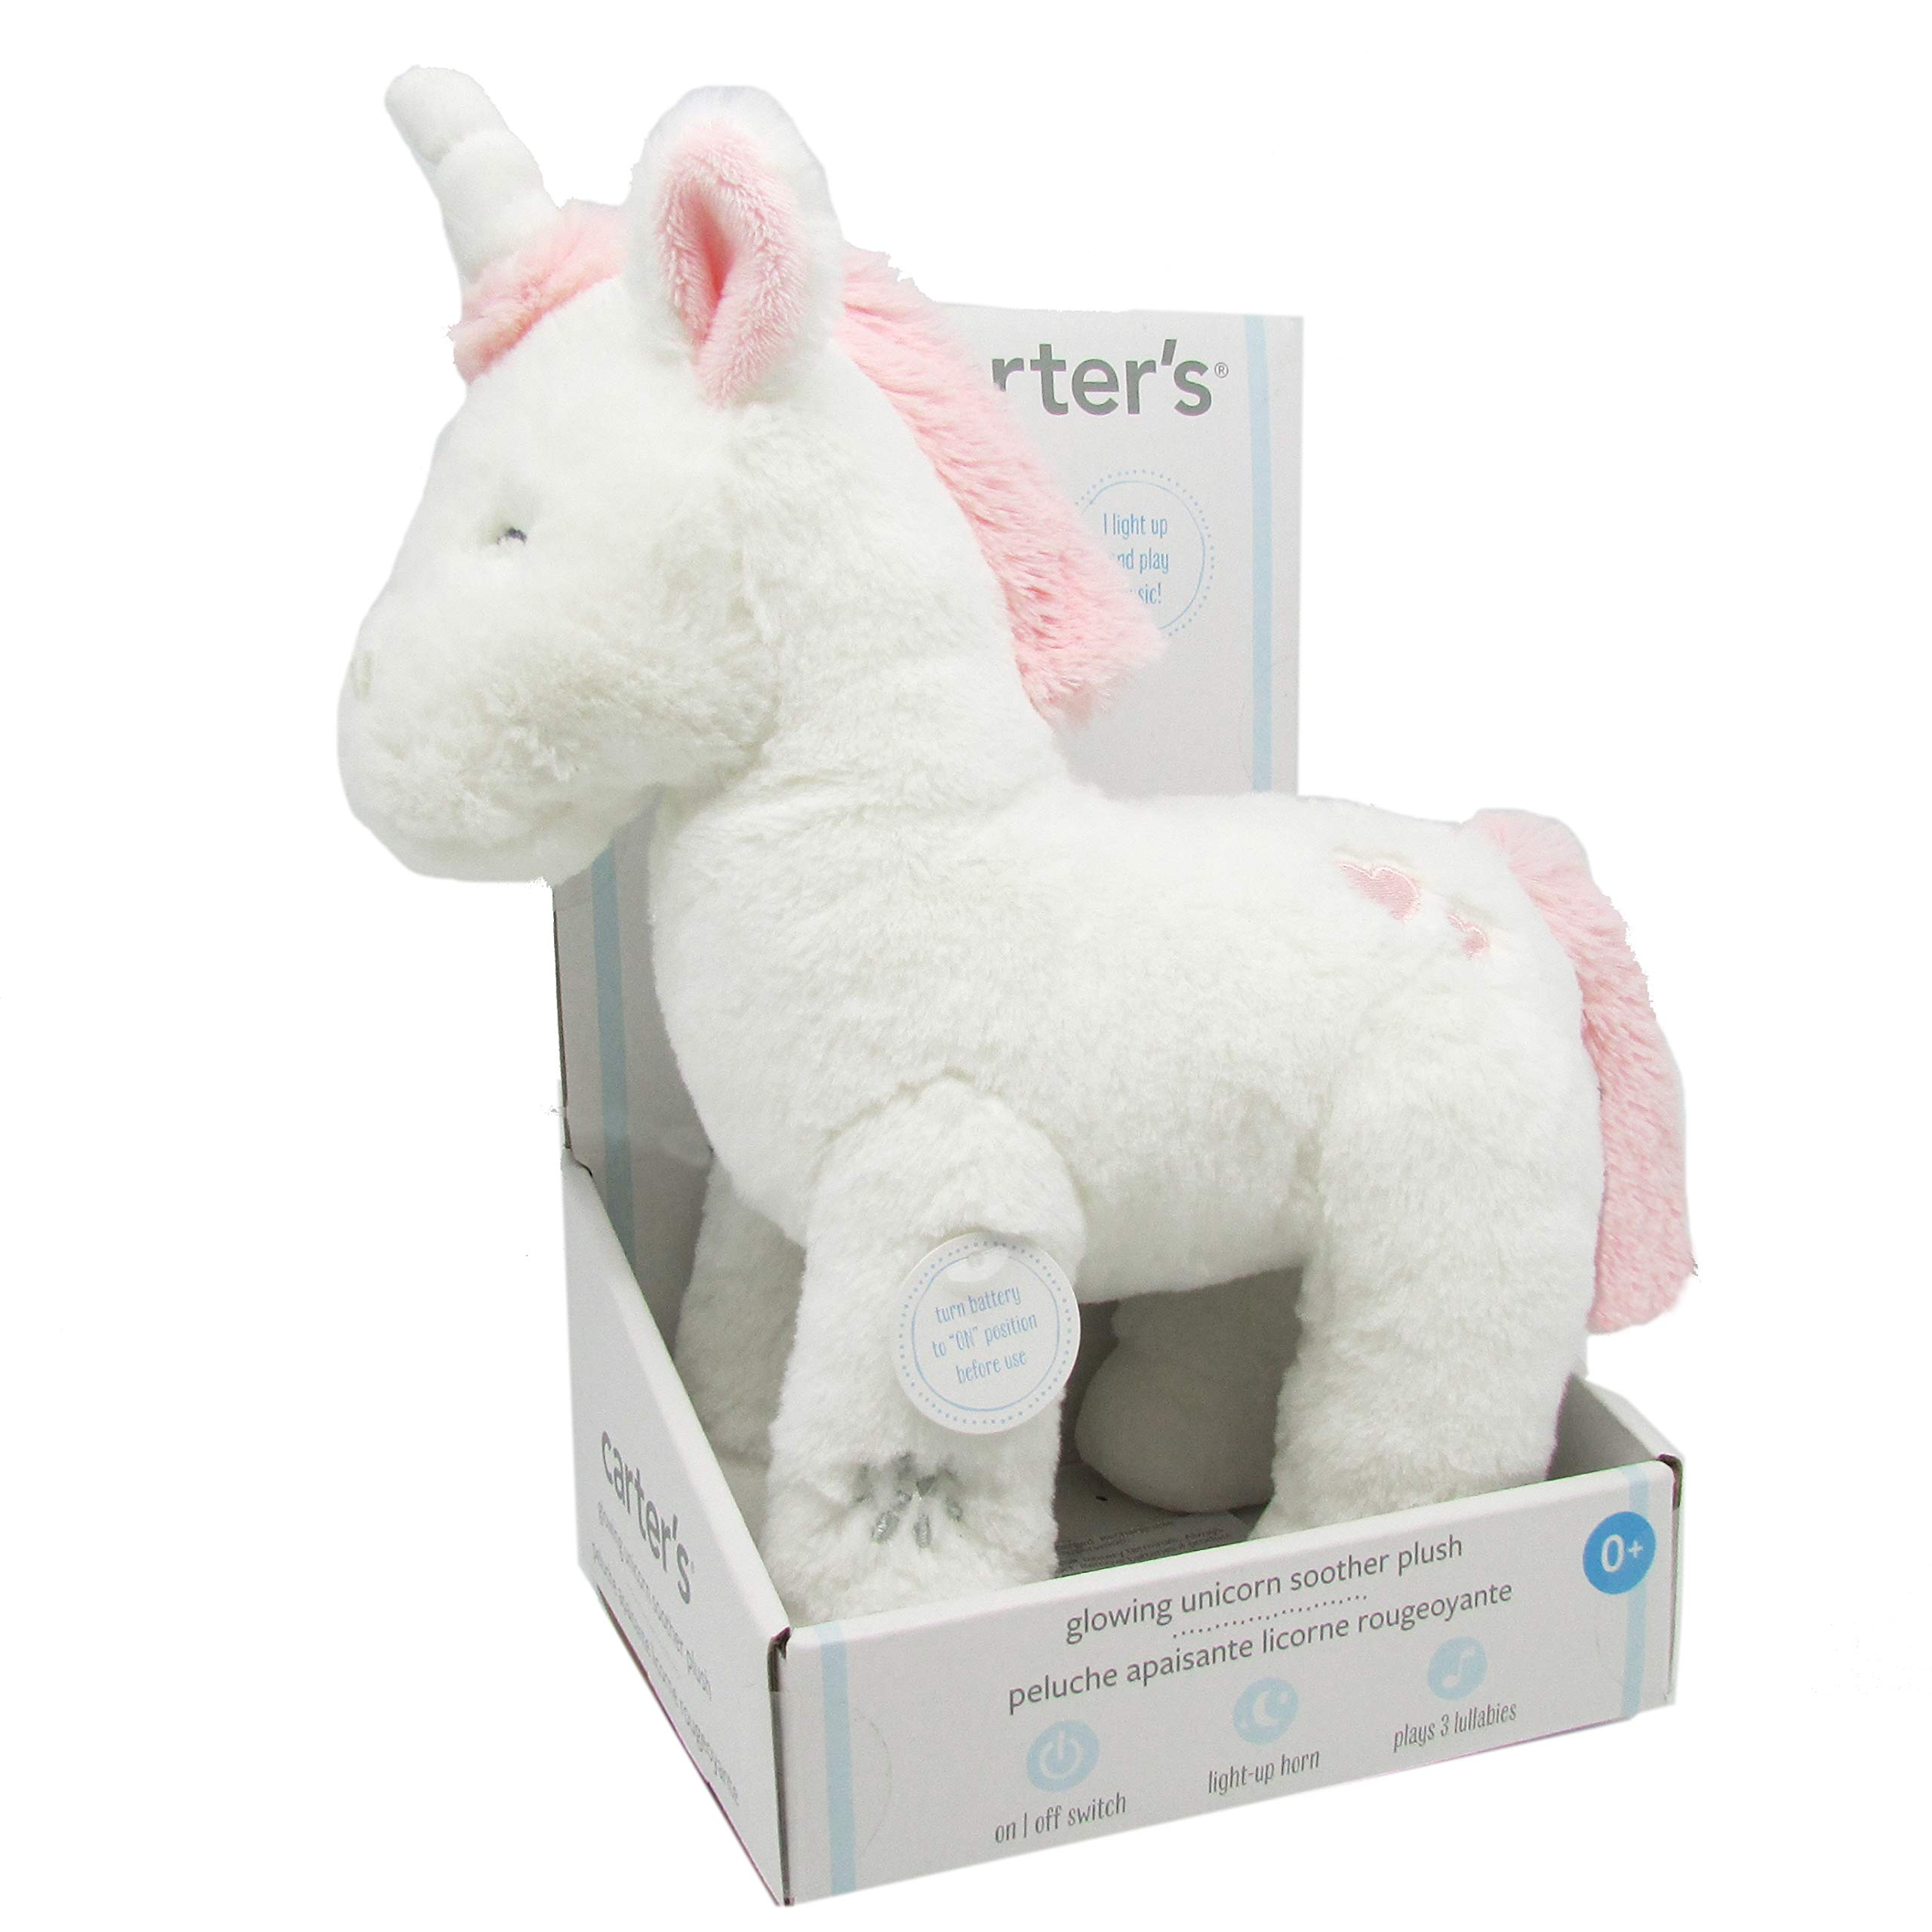 Carter's Unicorn Soother Plush with Music & Glowing Horn